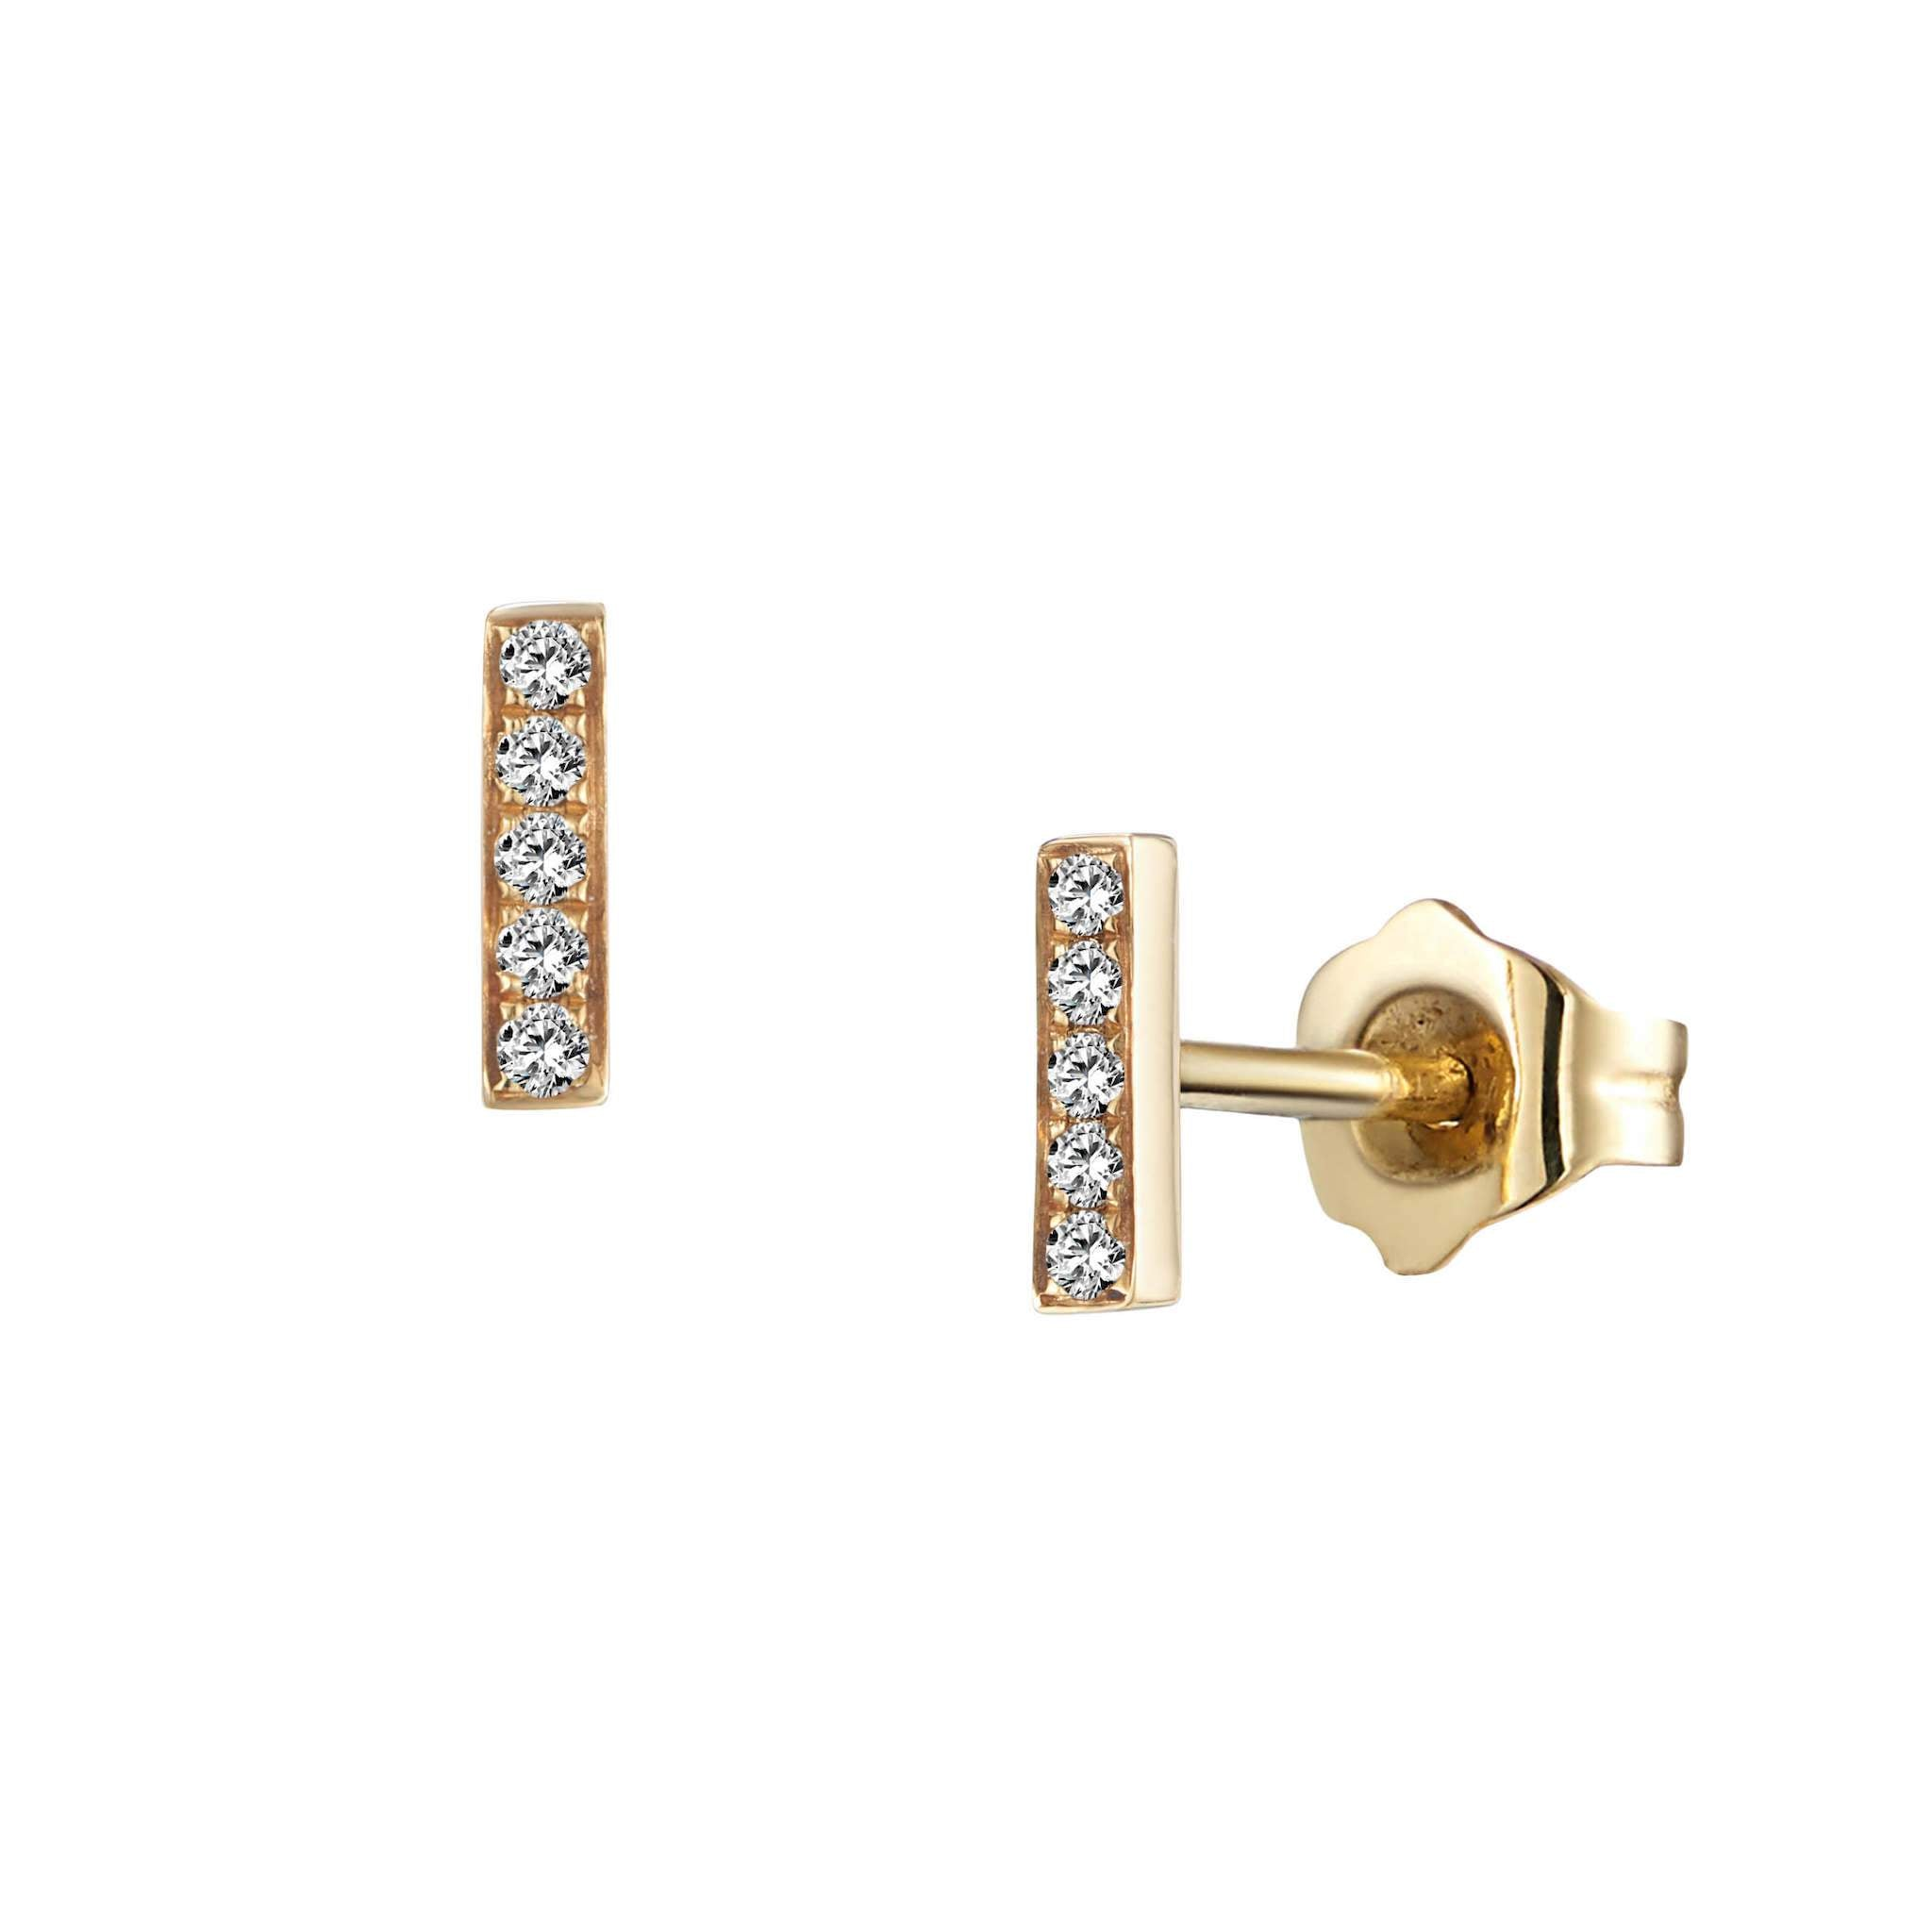 Leora Stud Earrings